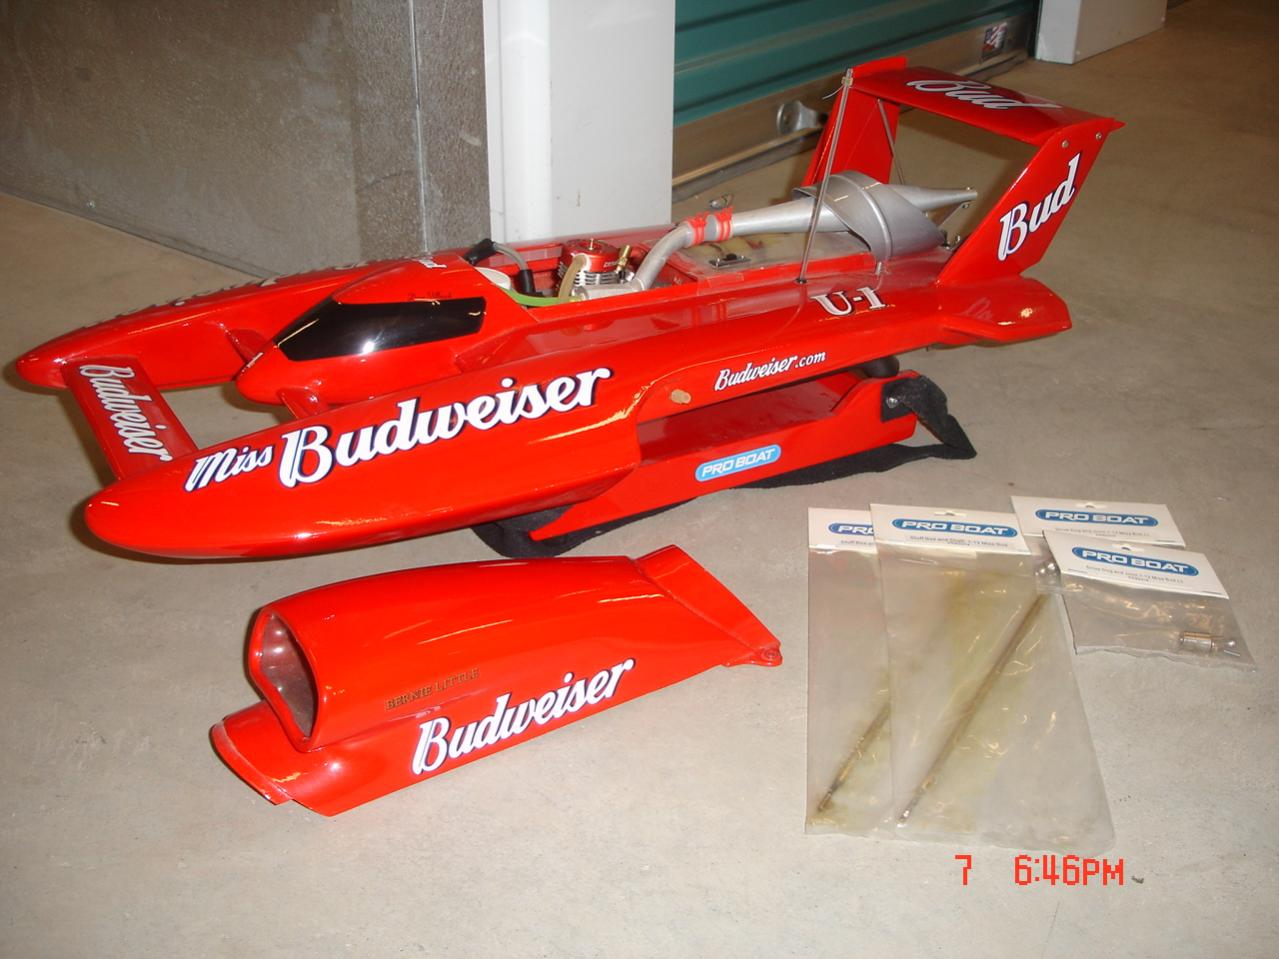 brushless rc boat with 487478 Pro Boat Miss Budweiser U 1 Nitro Boat 15 A on Icon A5 Pnp Pkz5875 additionally 99b 10018 630 Ep Artr likewise 12130141 Take Trip Across The Water With Rc Boats At Sto Racing Products further Showthread as well Radio Controlled Watermelon.